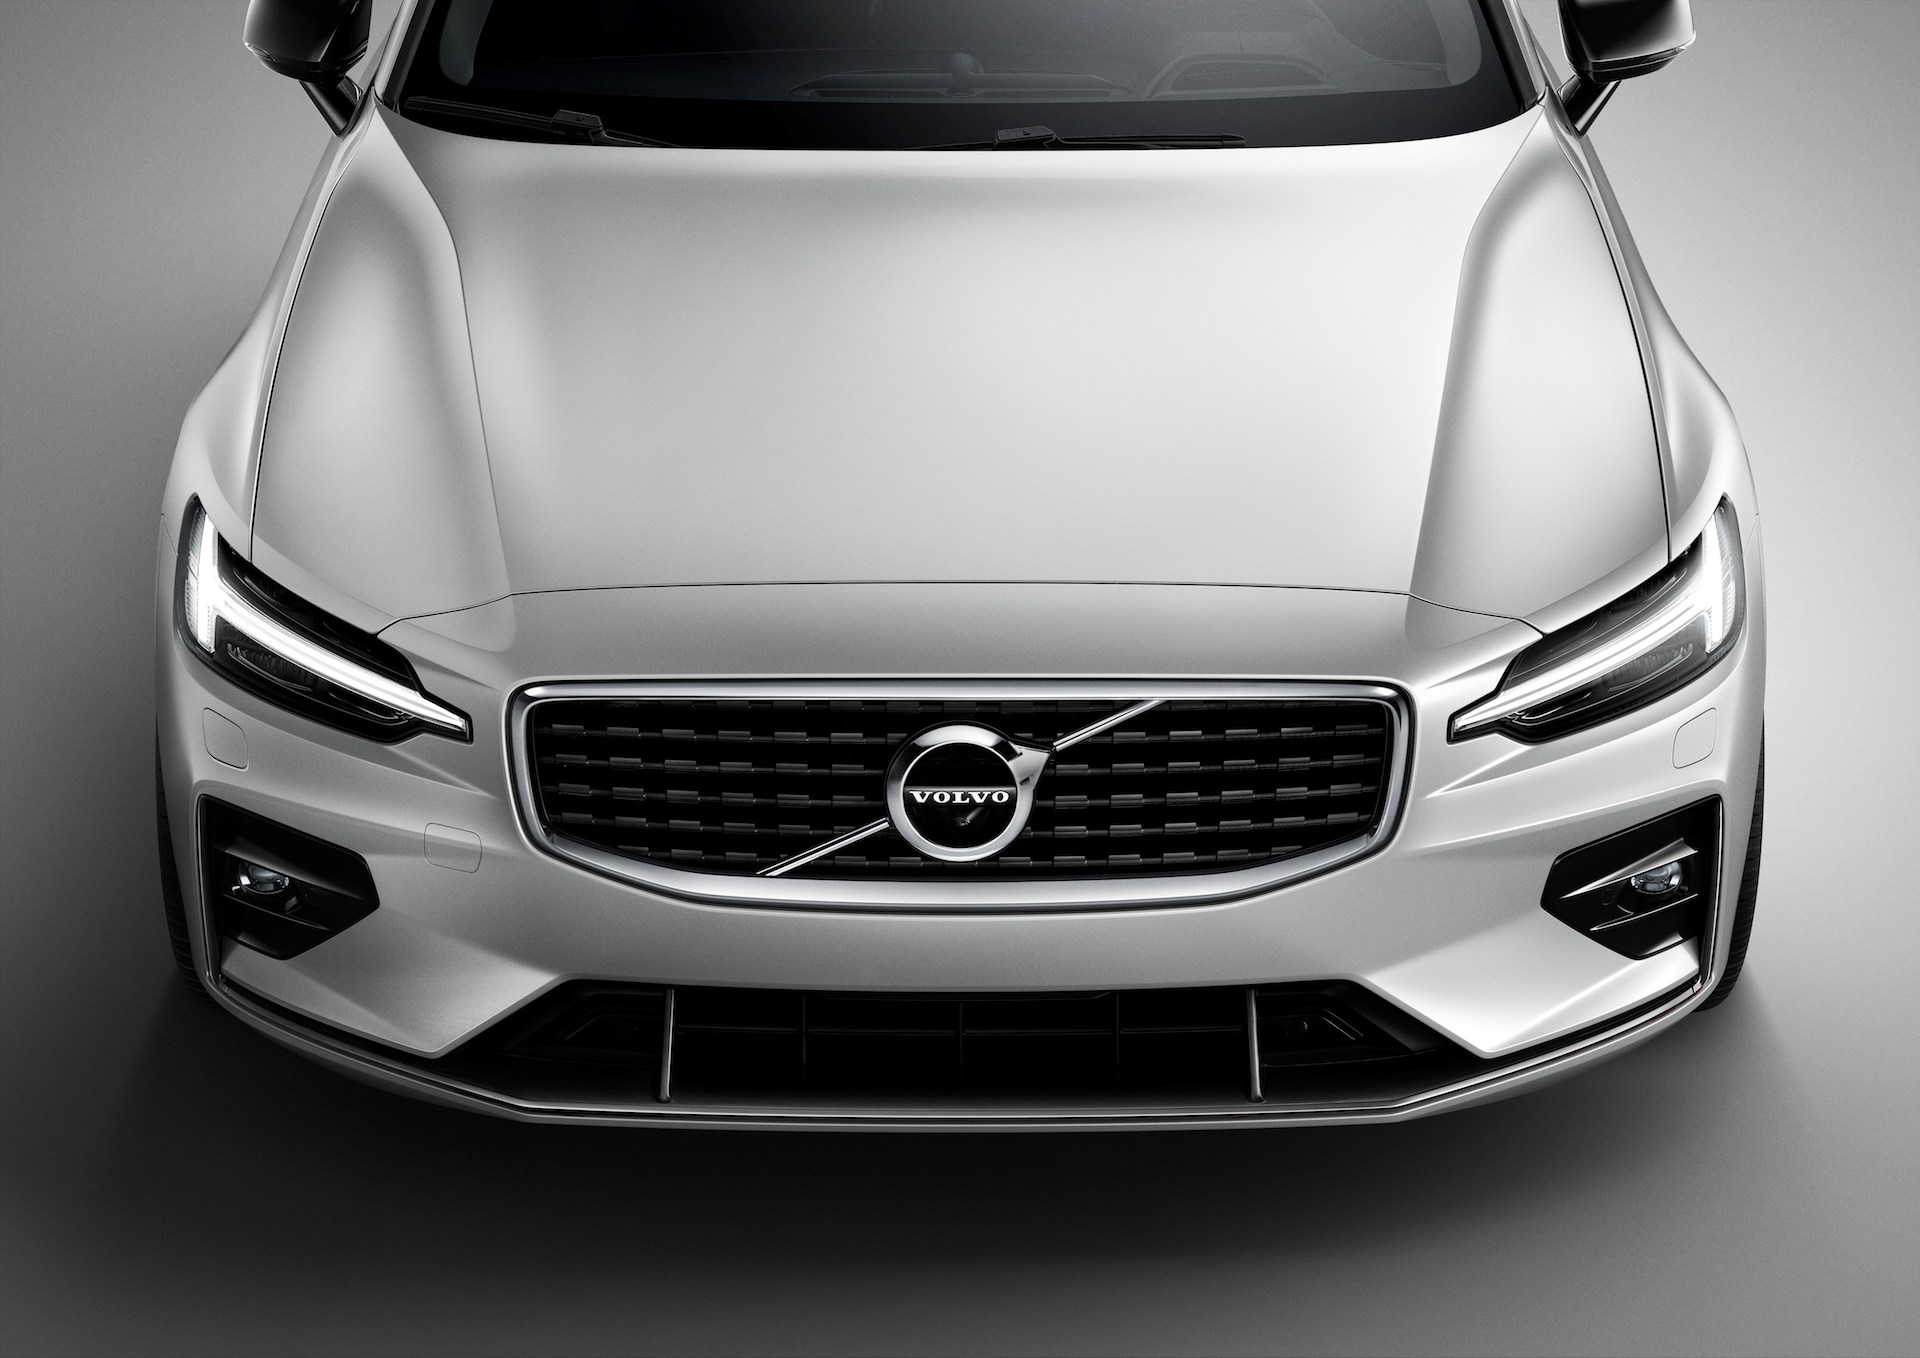 New Volvo V60 R-design